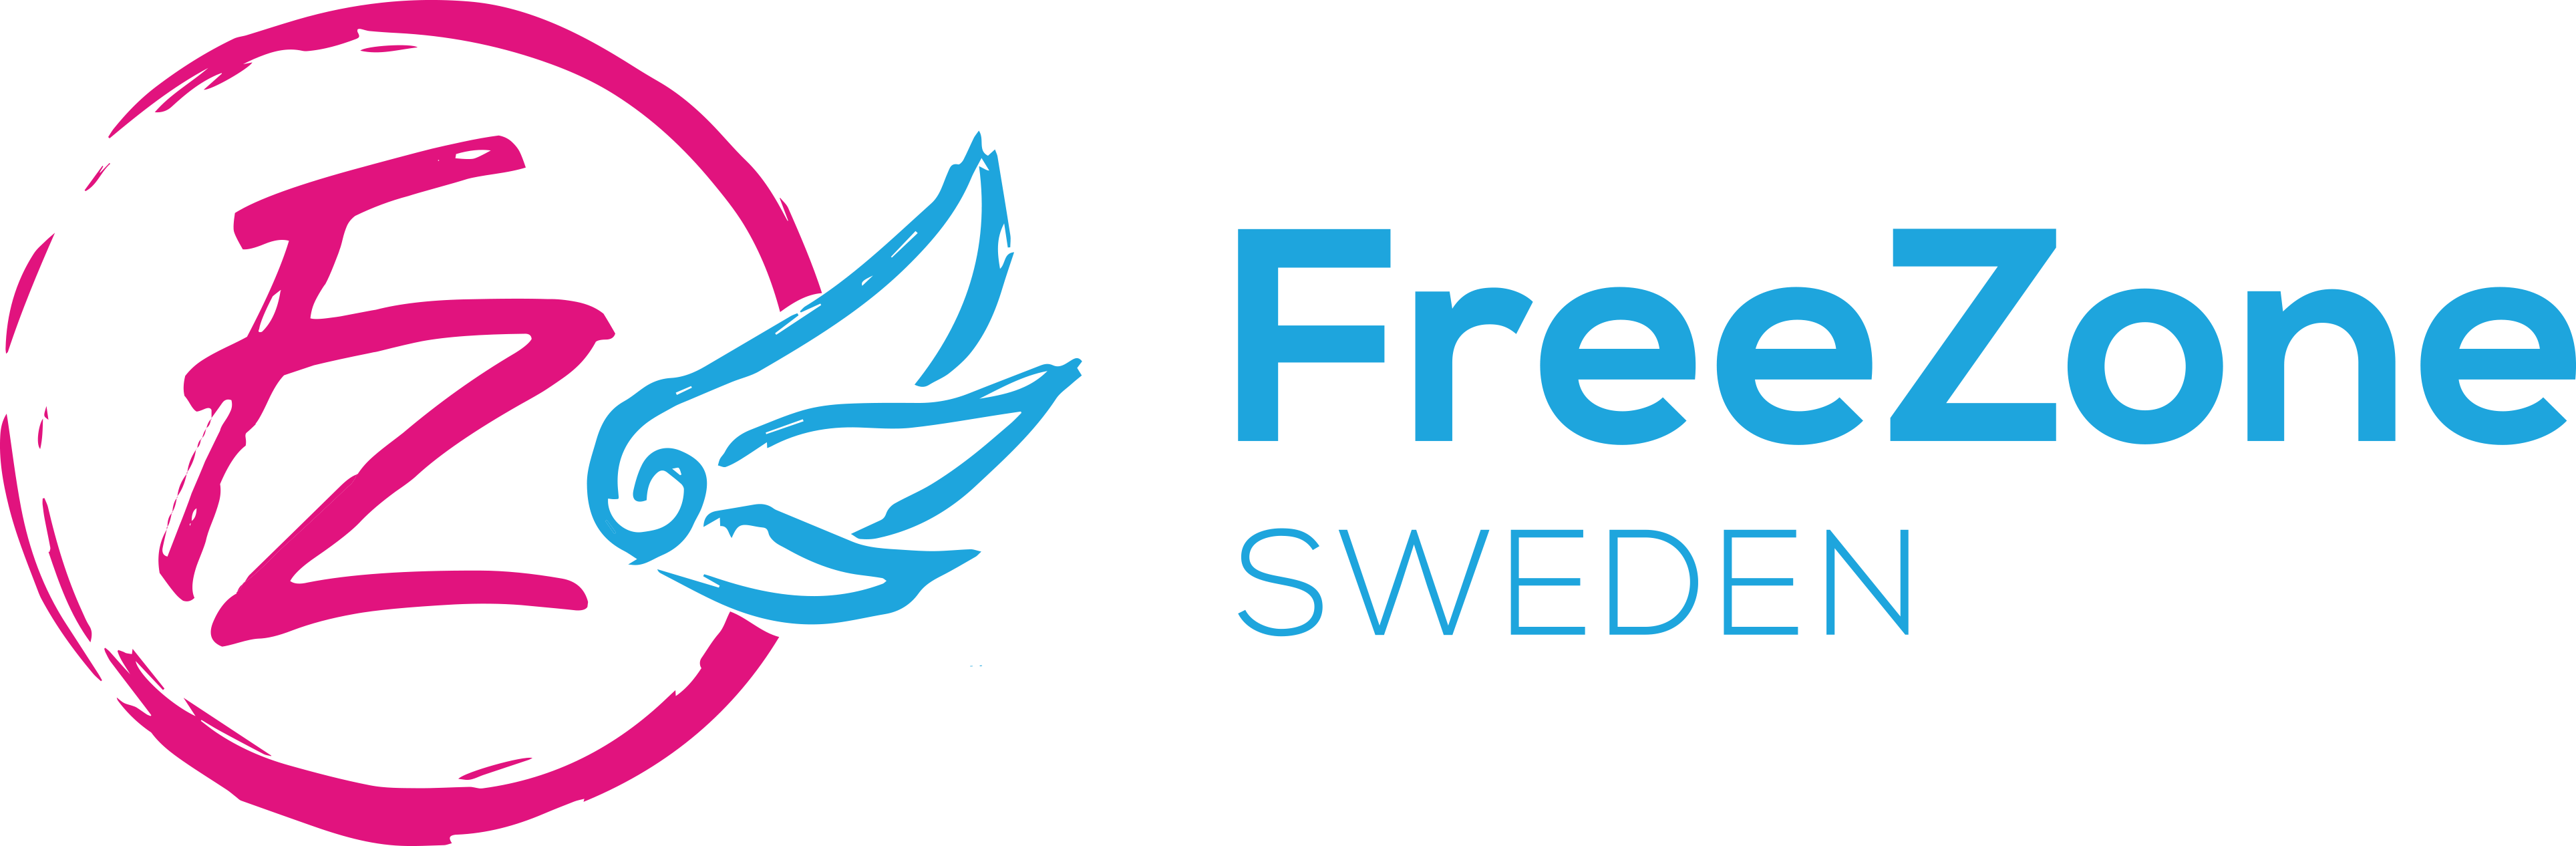 FreeZone Sweden